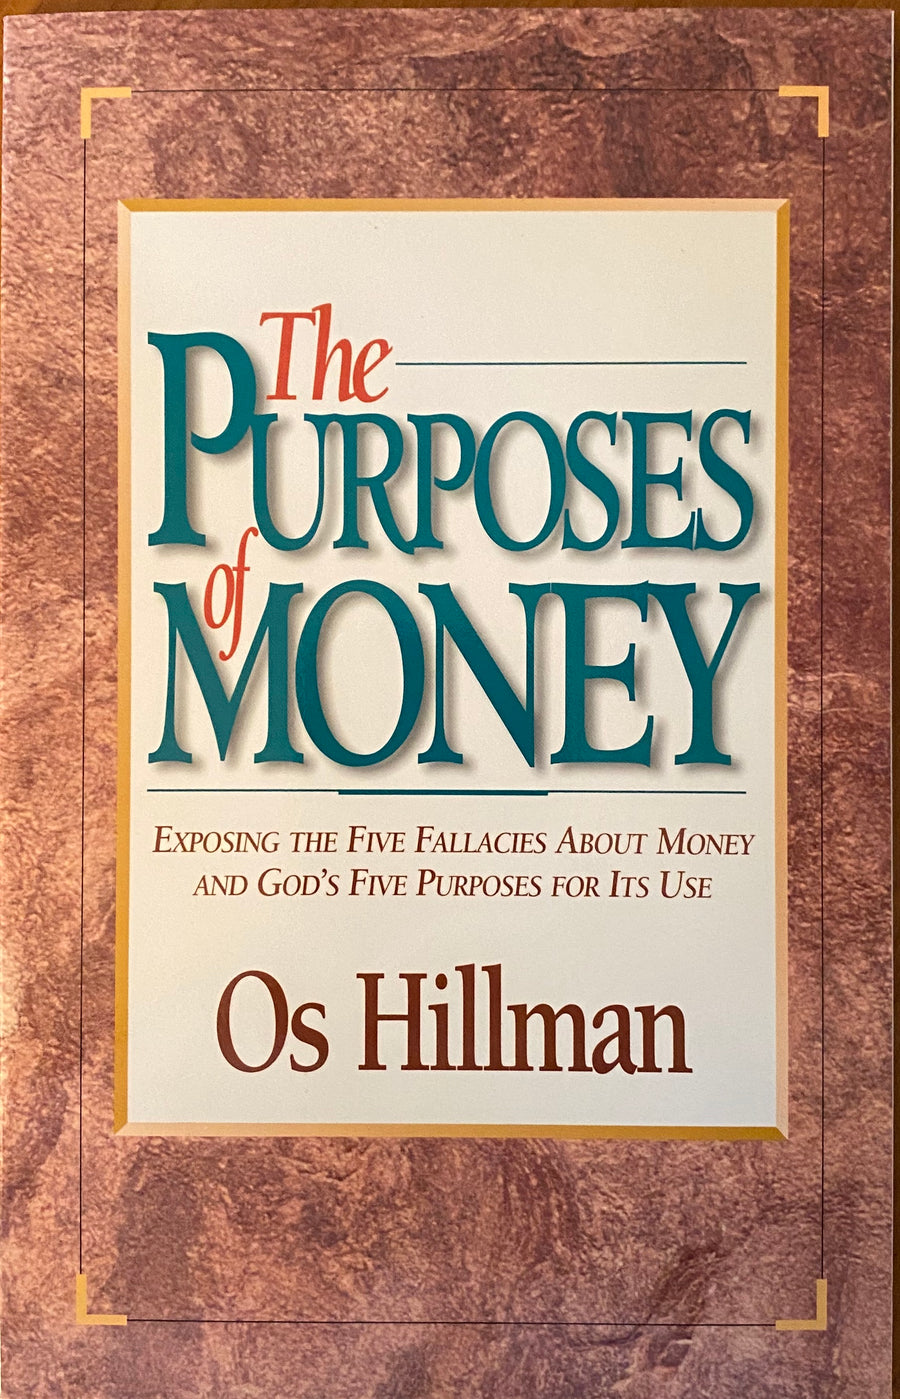 Purposes of Money: Exposing The Five Fallacies Of About Money And God's Five Purposes Of Its Use - Leadership Books